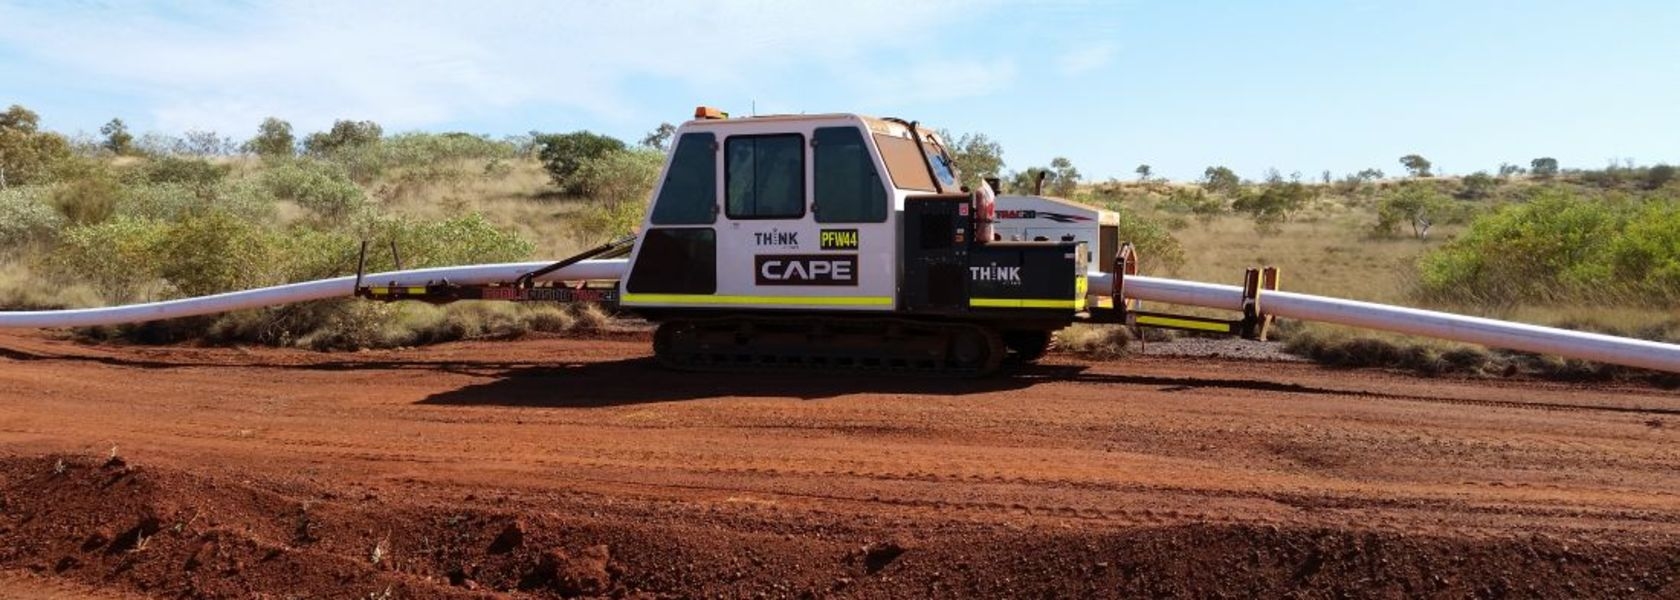 Cape wins gold and lithium work